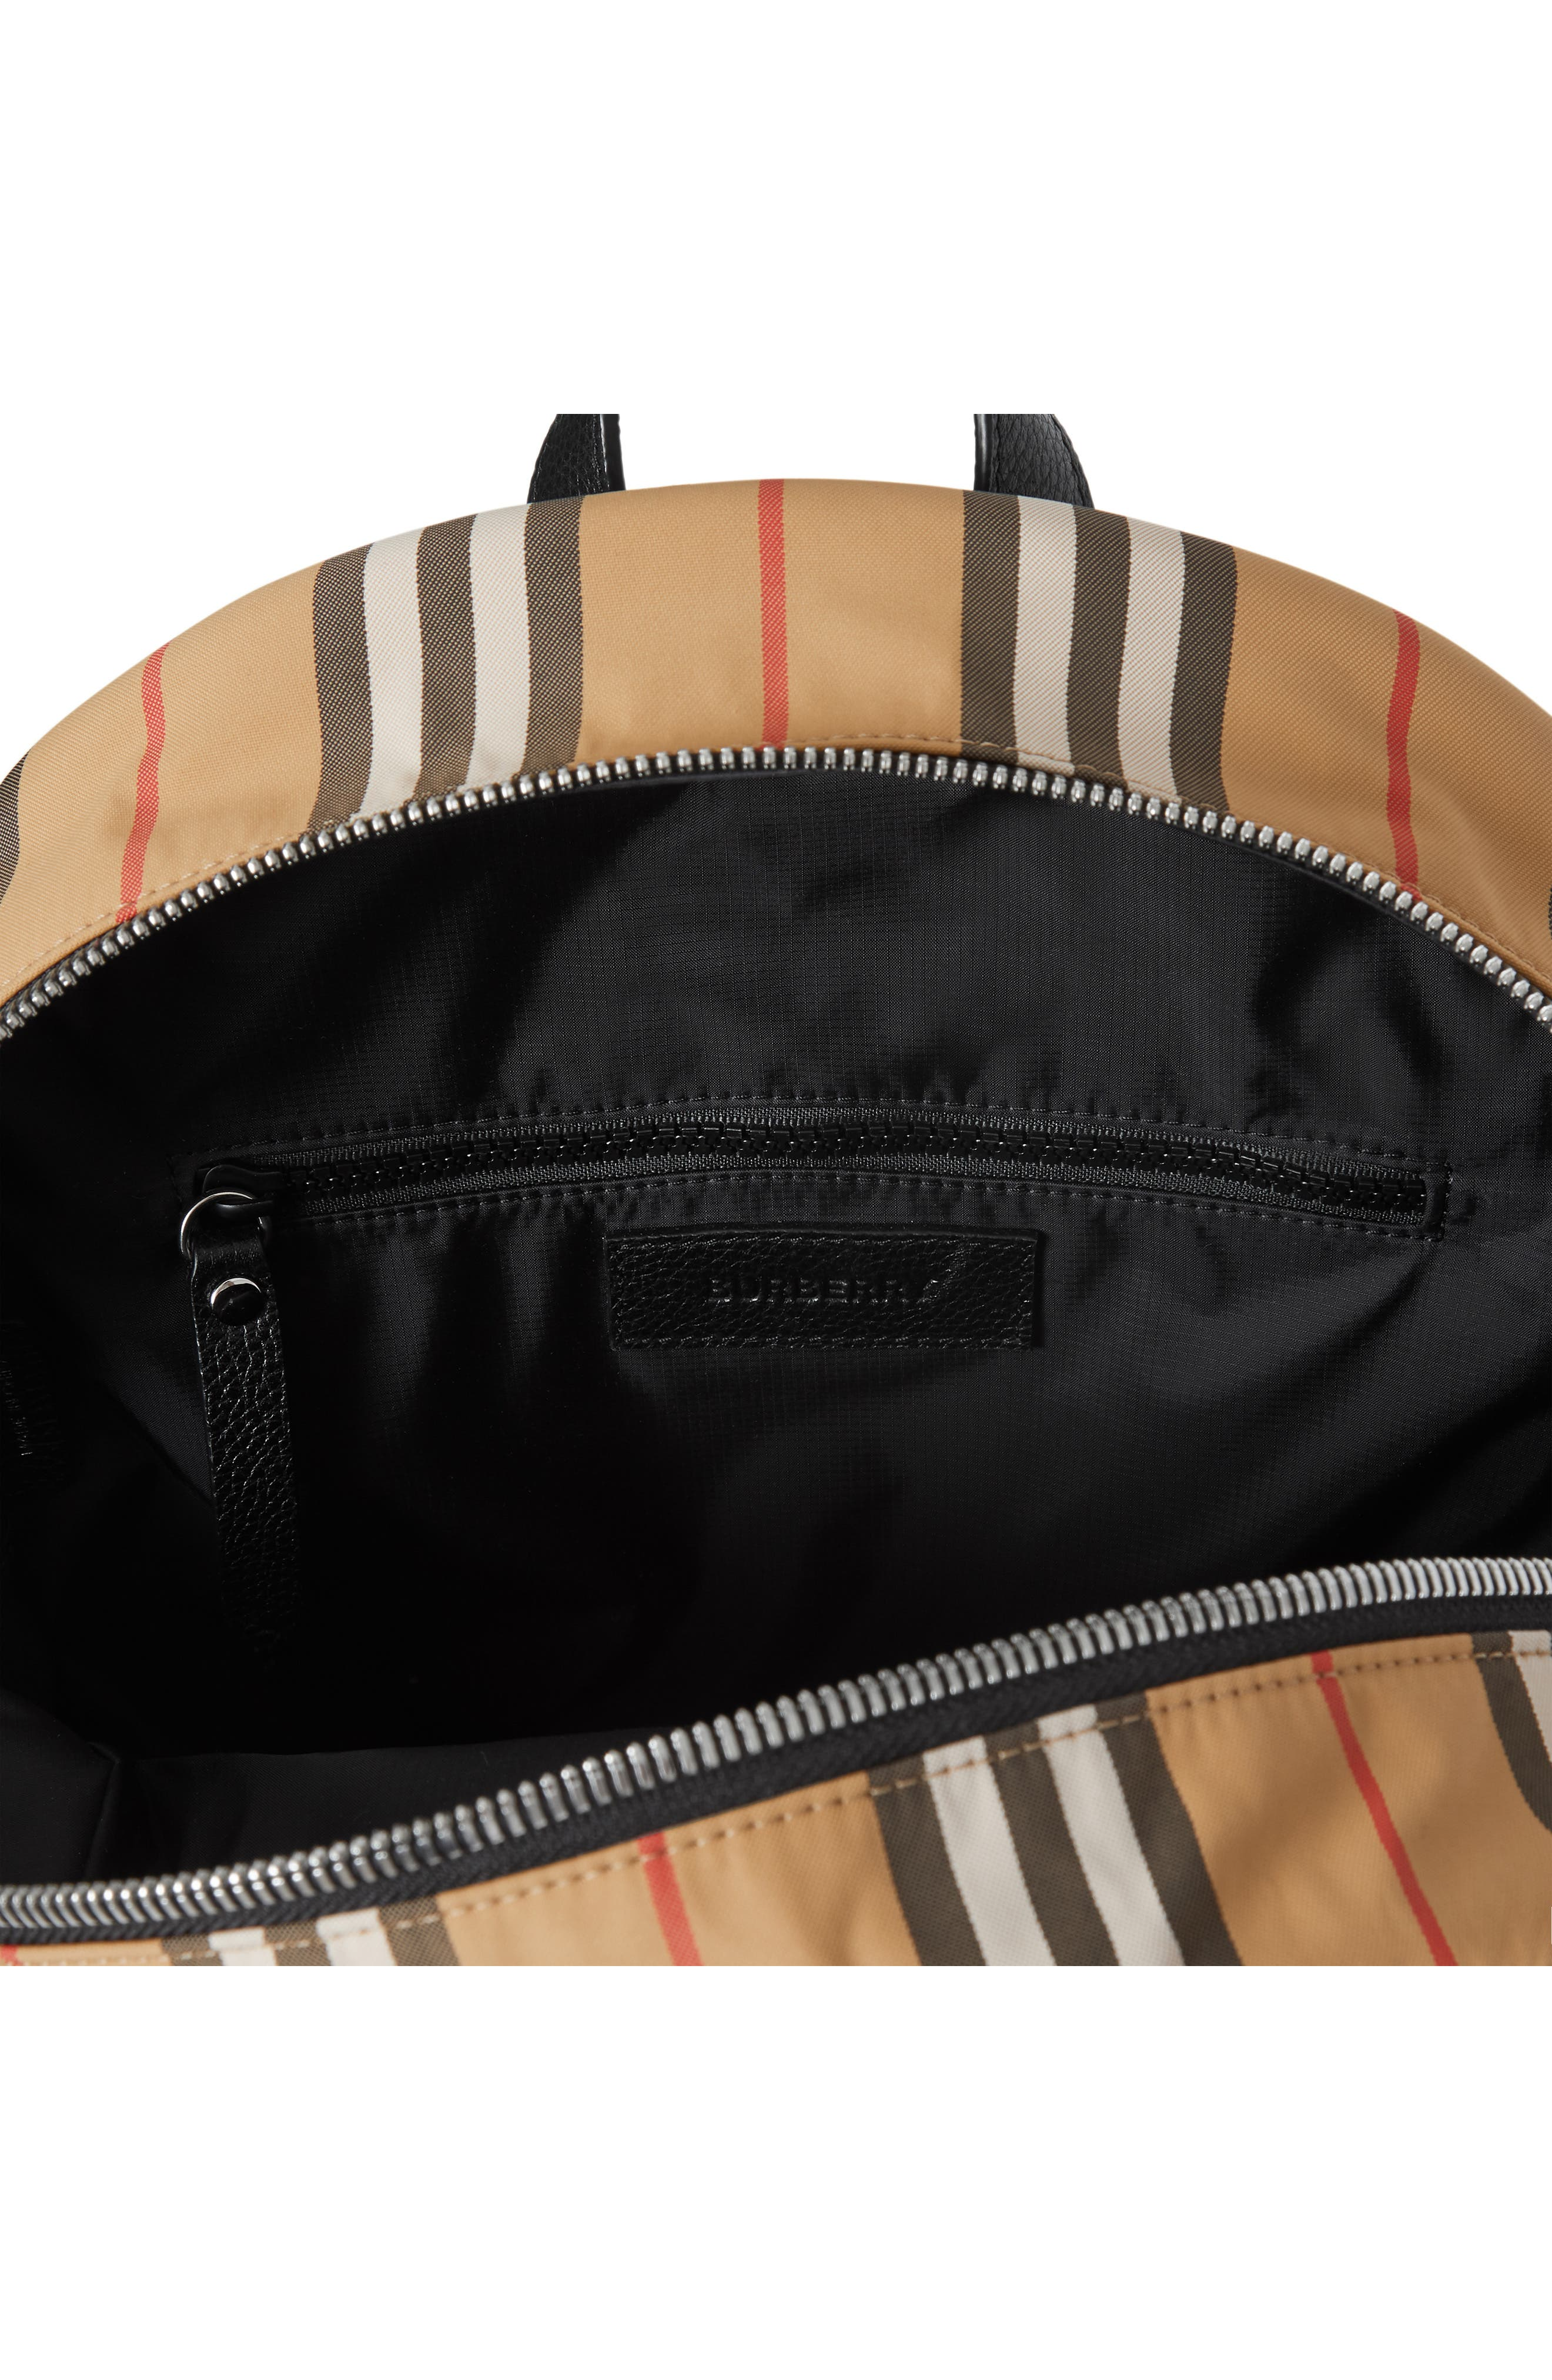 BURBERRY, Nico Archive Stripe Backpack, Alternate thumbnail 3, color, ARCHIVE BEIGE